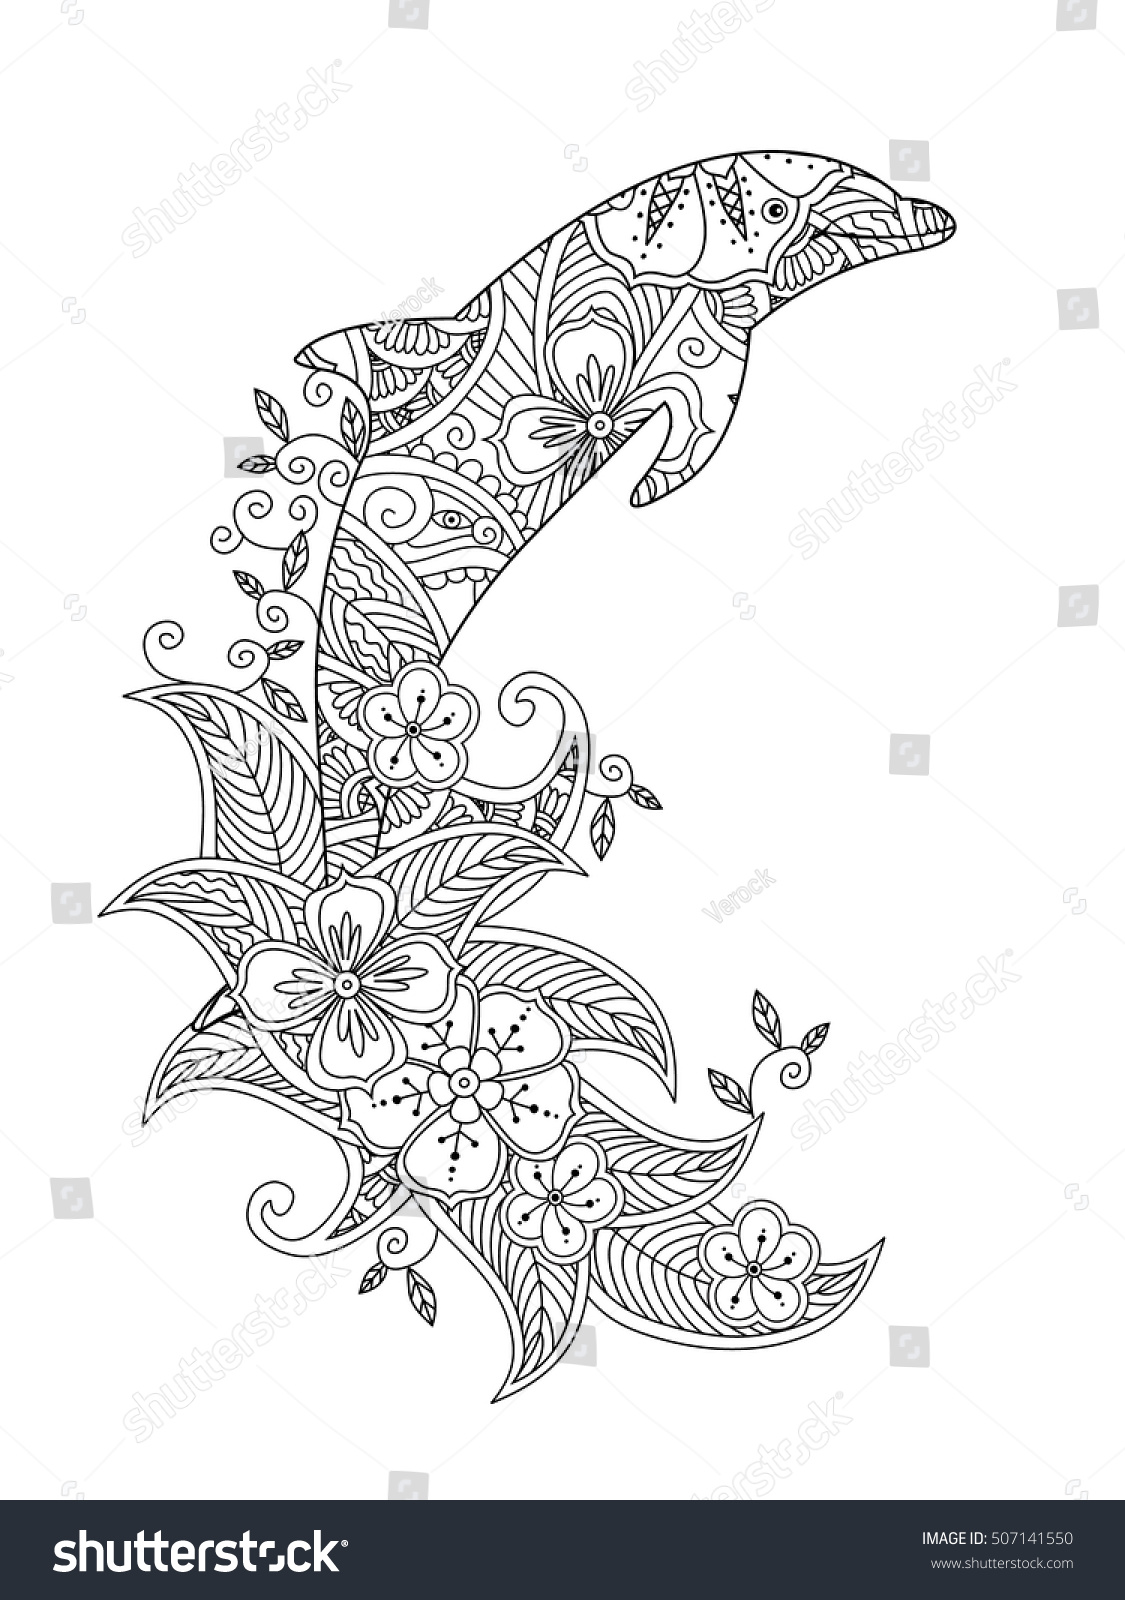 Coloring Page Ornate Jumping Dolphin On Stock Vector 507141550 ...